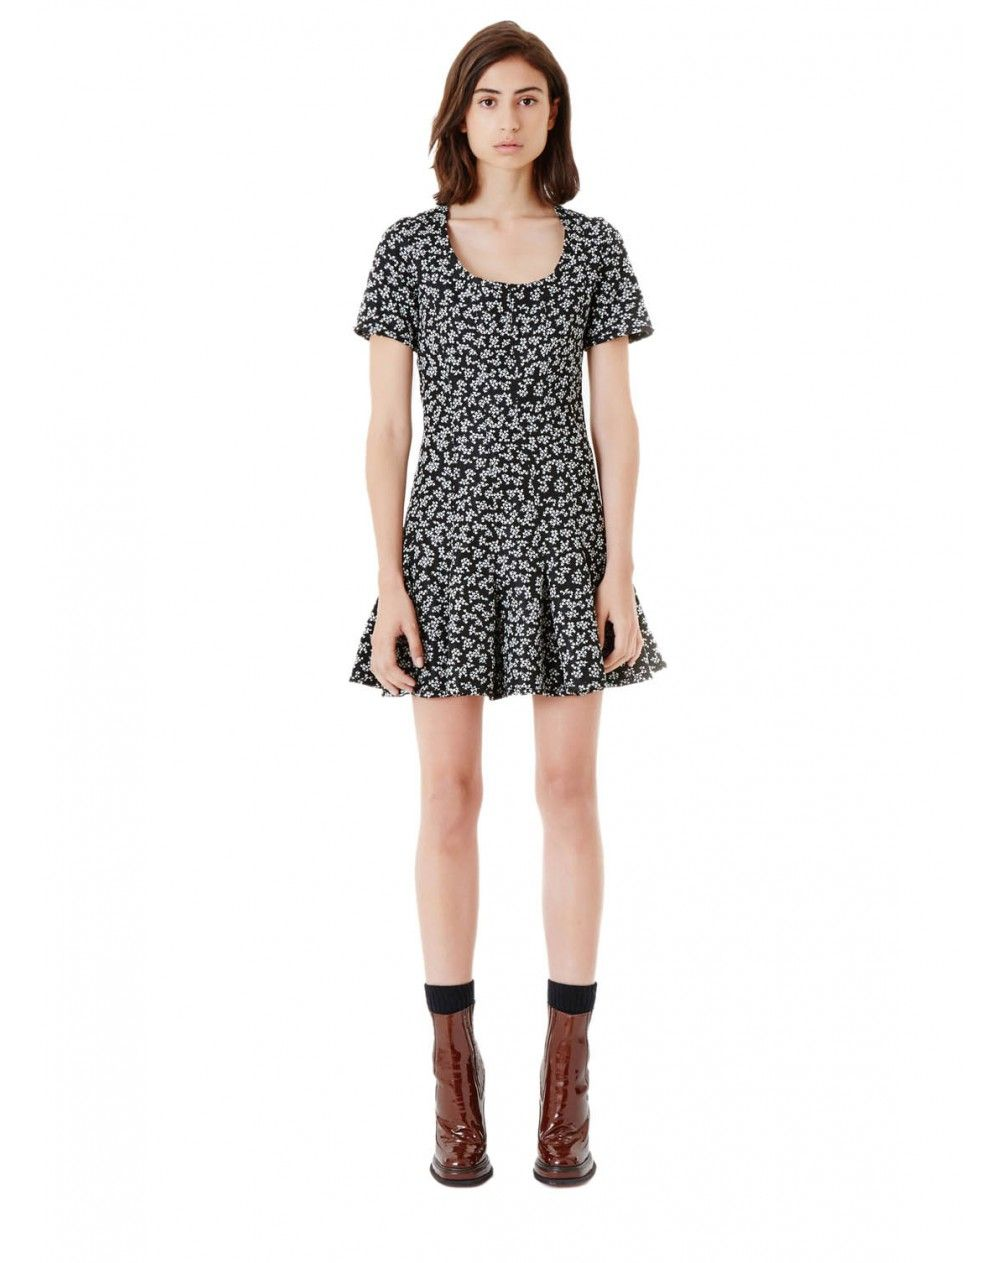 Short Skater Dress With Short Sleeves And Round Neckline Black And